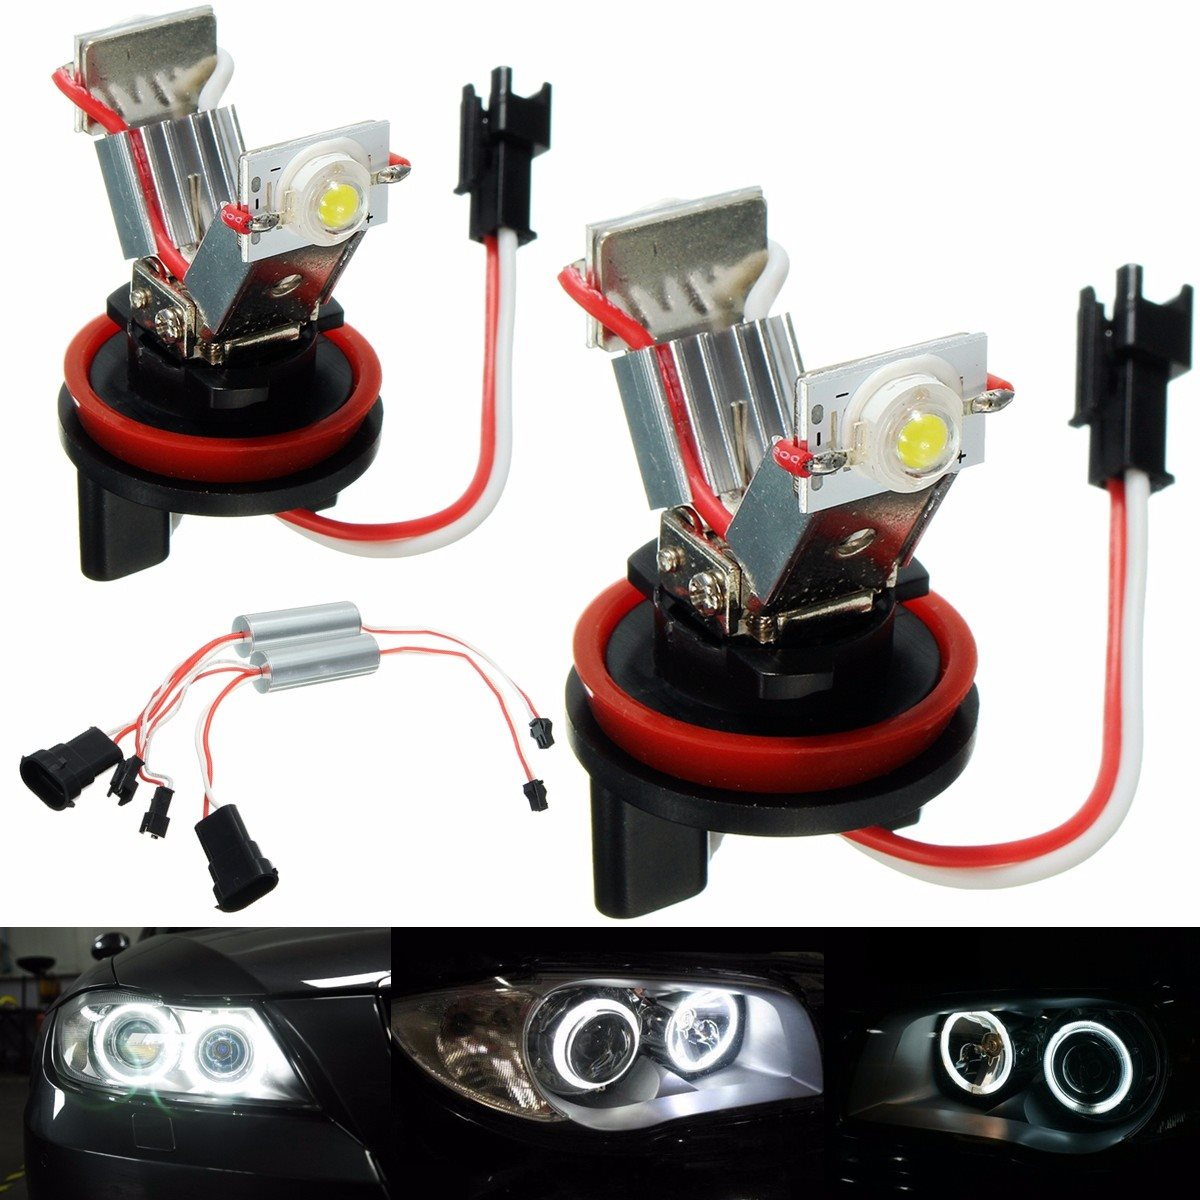 1 Pair 12W H8 LED Bulbs Angel Eyes Halo Light Bulbs Marker Headlight For BMW E60 E82 E87 E90 E92 футболка print bar real огненный лого